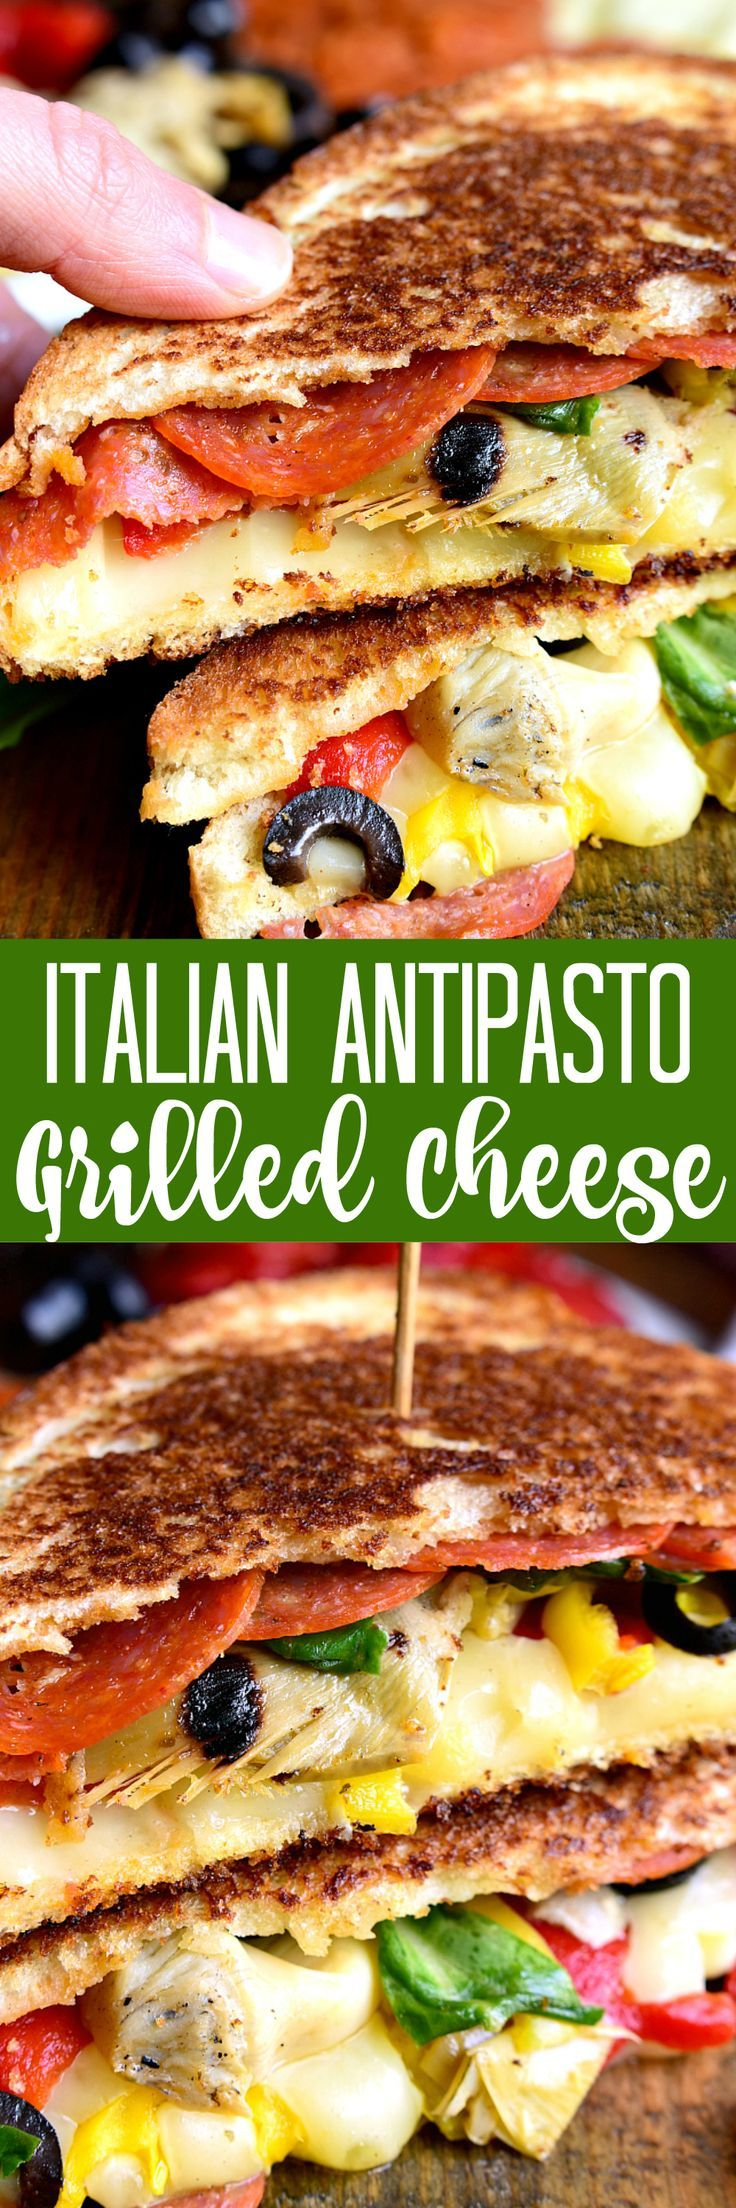 Italian Antipasto Grilled Cheese Sandwiches - loaded with pepperoni, cheese, artichokes, olives, roasted red peppers, and more! A fun and delicious twist on grilled cheese! (scheduled via http://www.tailwindapp.com?utm_source=pinterest&utm_medium=twpin&utm_content=post142063185&utm_campaign=scheduler_attribution)